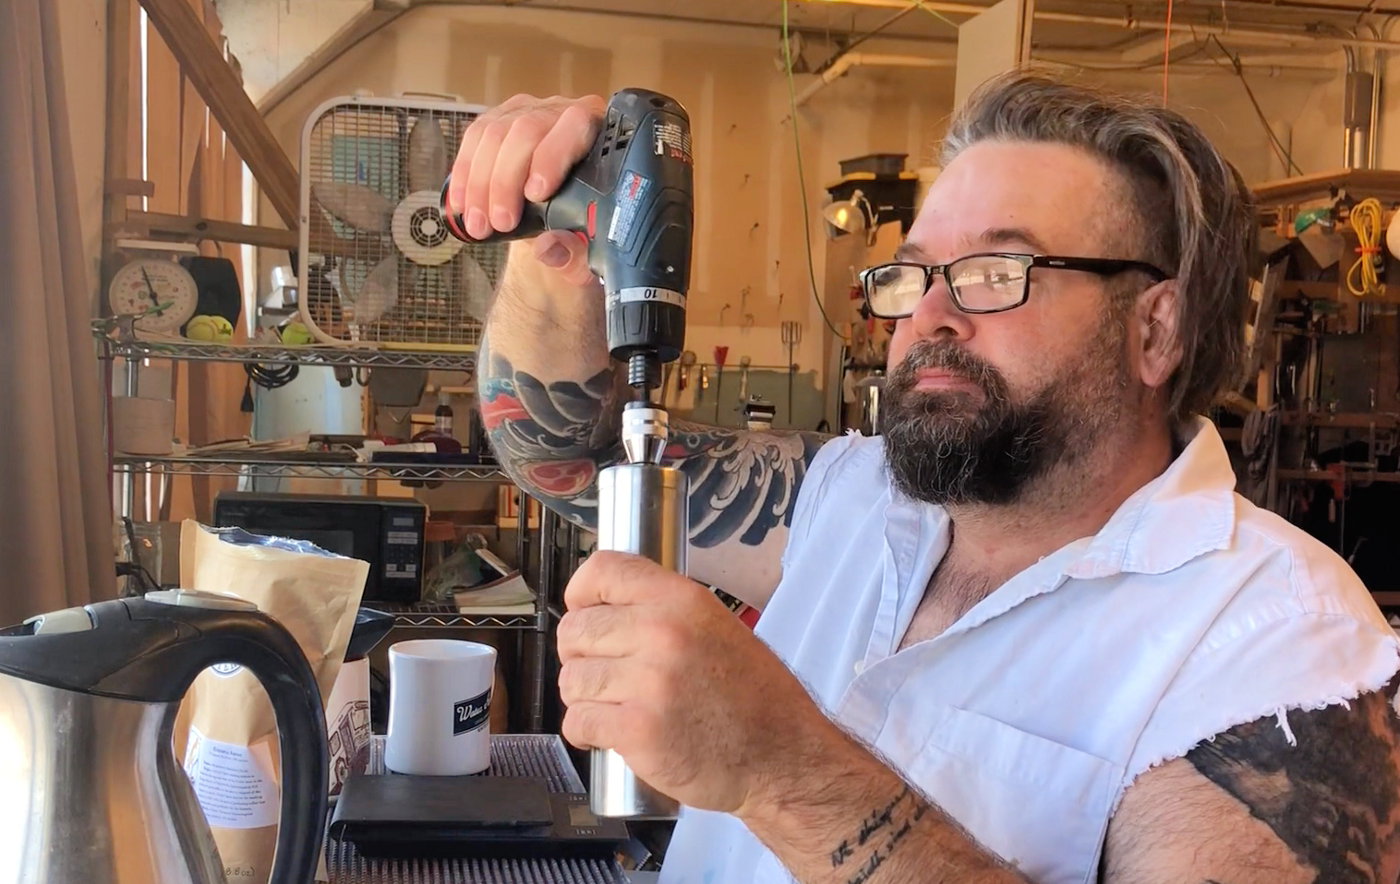 Guy using a drill to grind coffee.